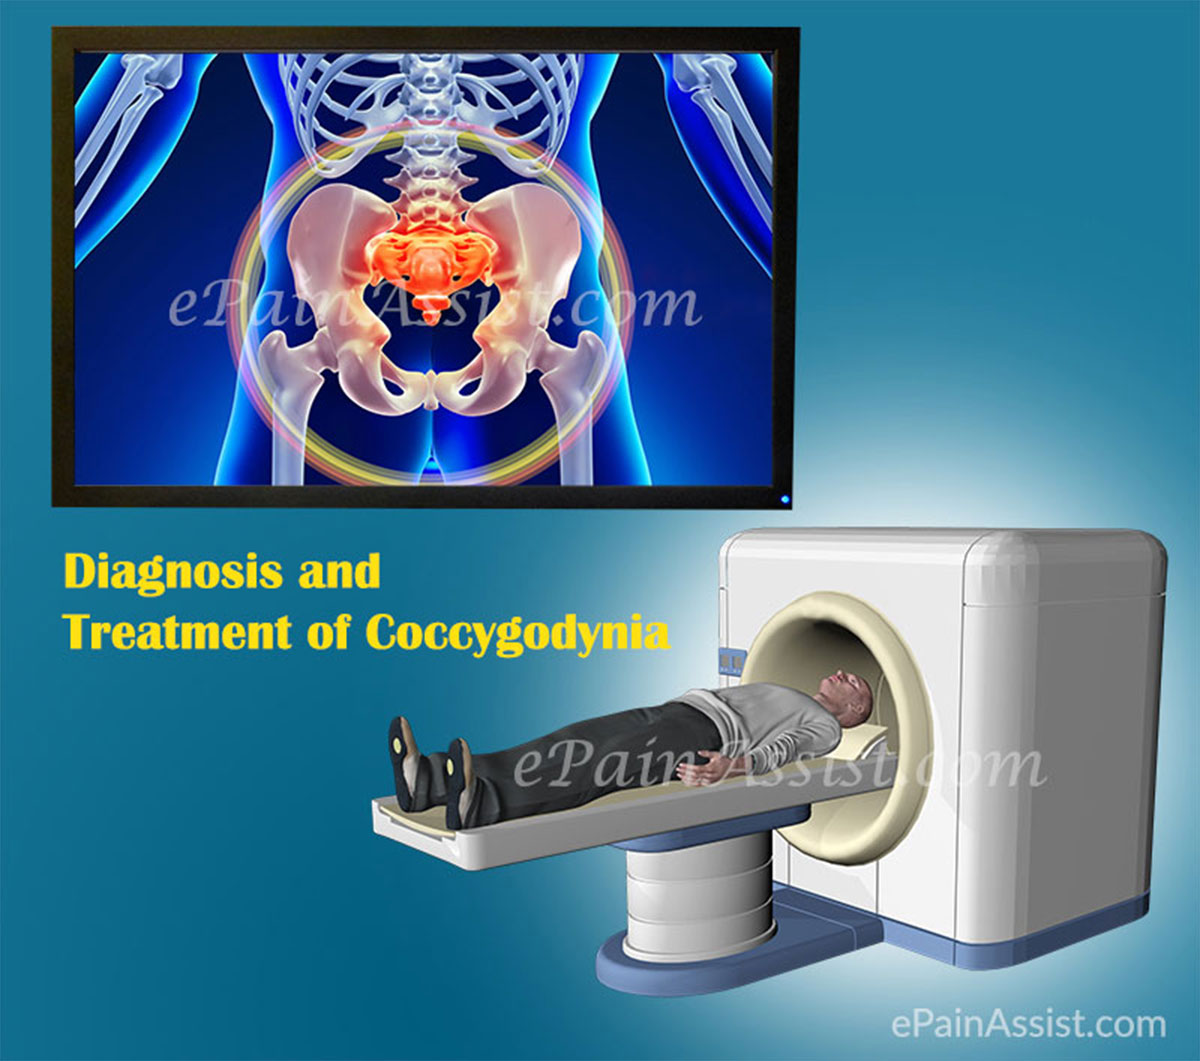 Tests to Diagnose Coccygodynia or Coccygeal Pain